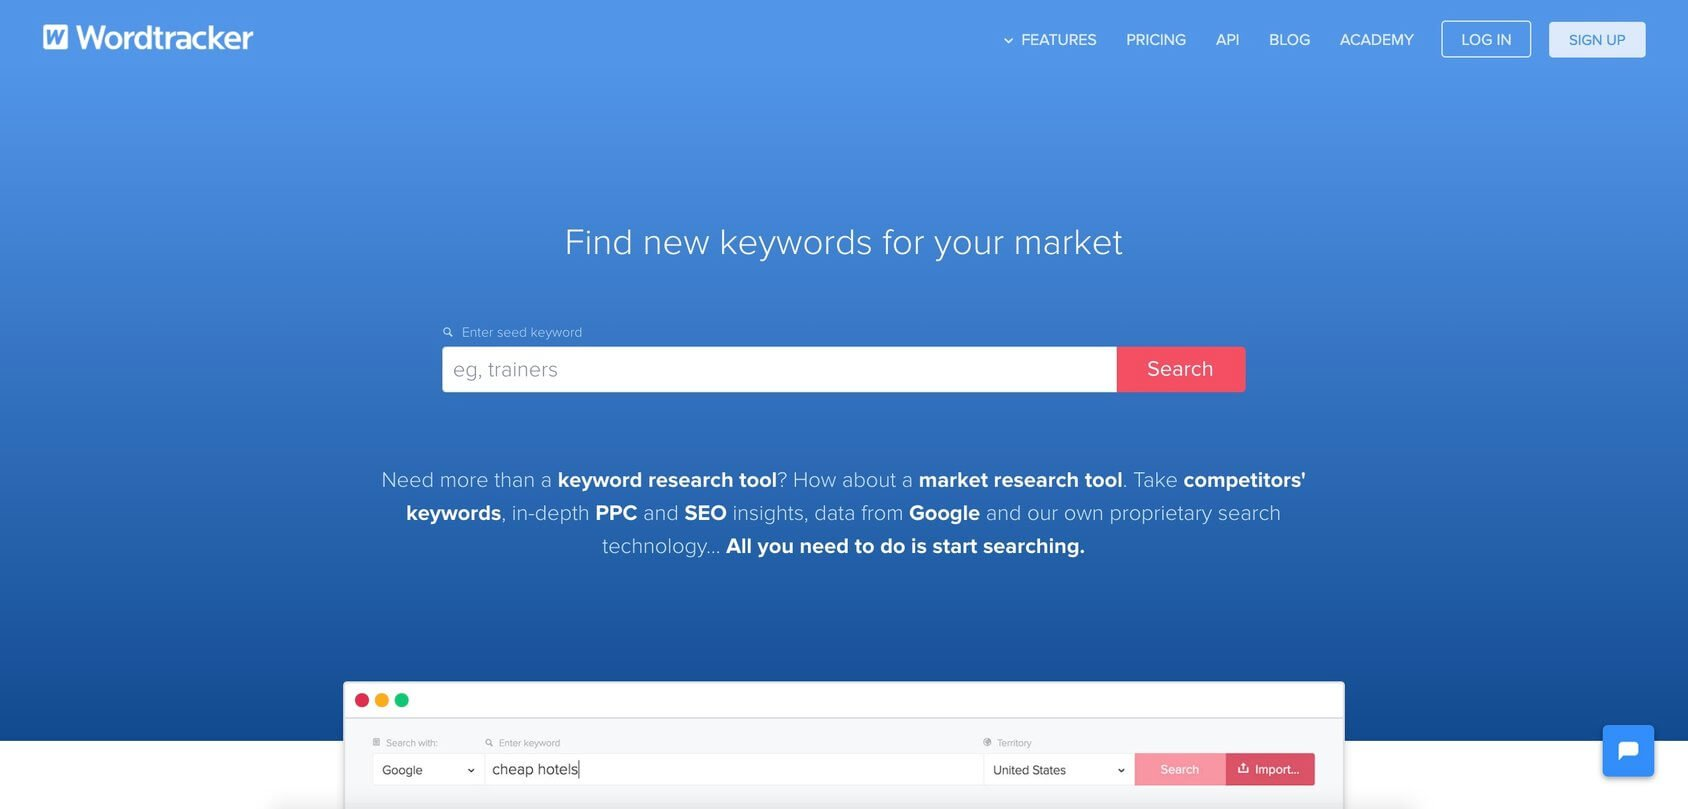 Wordtracker homepage